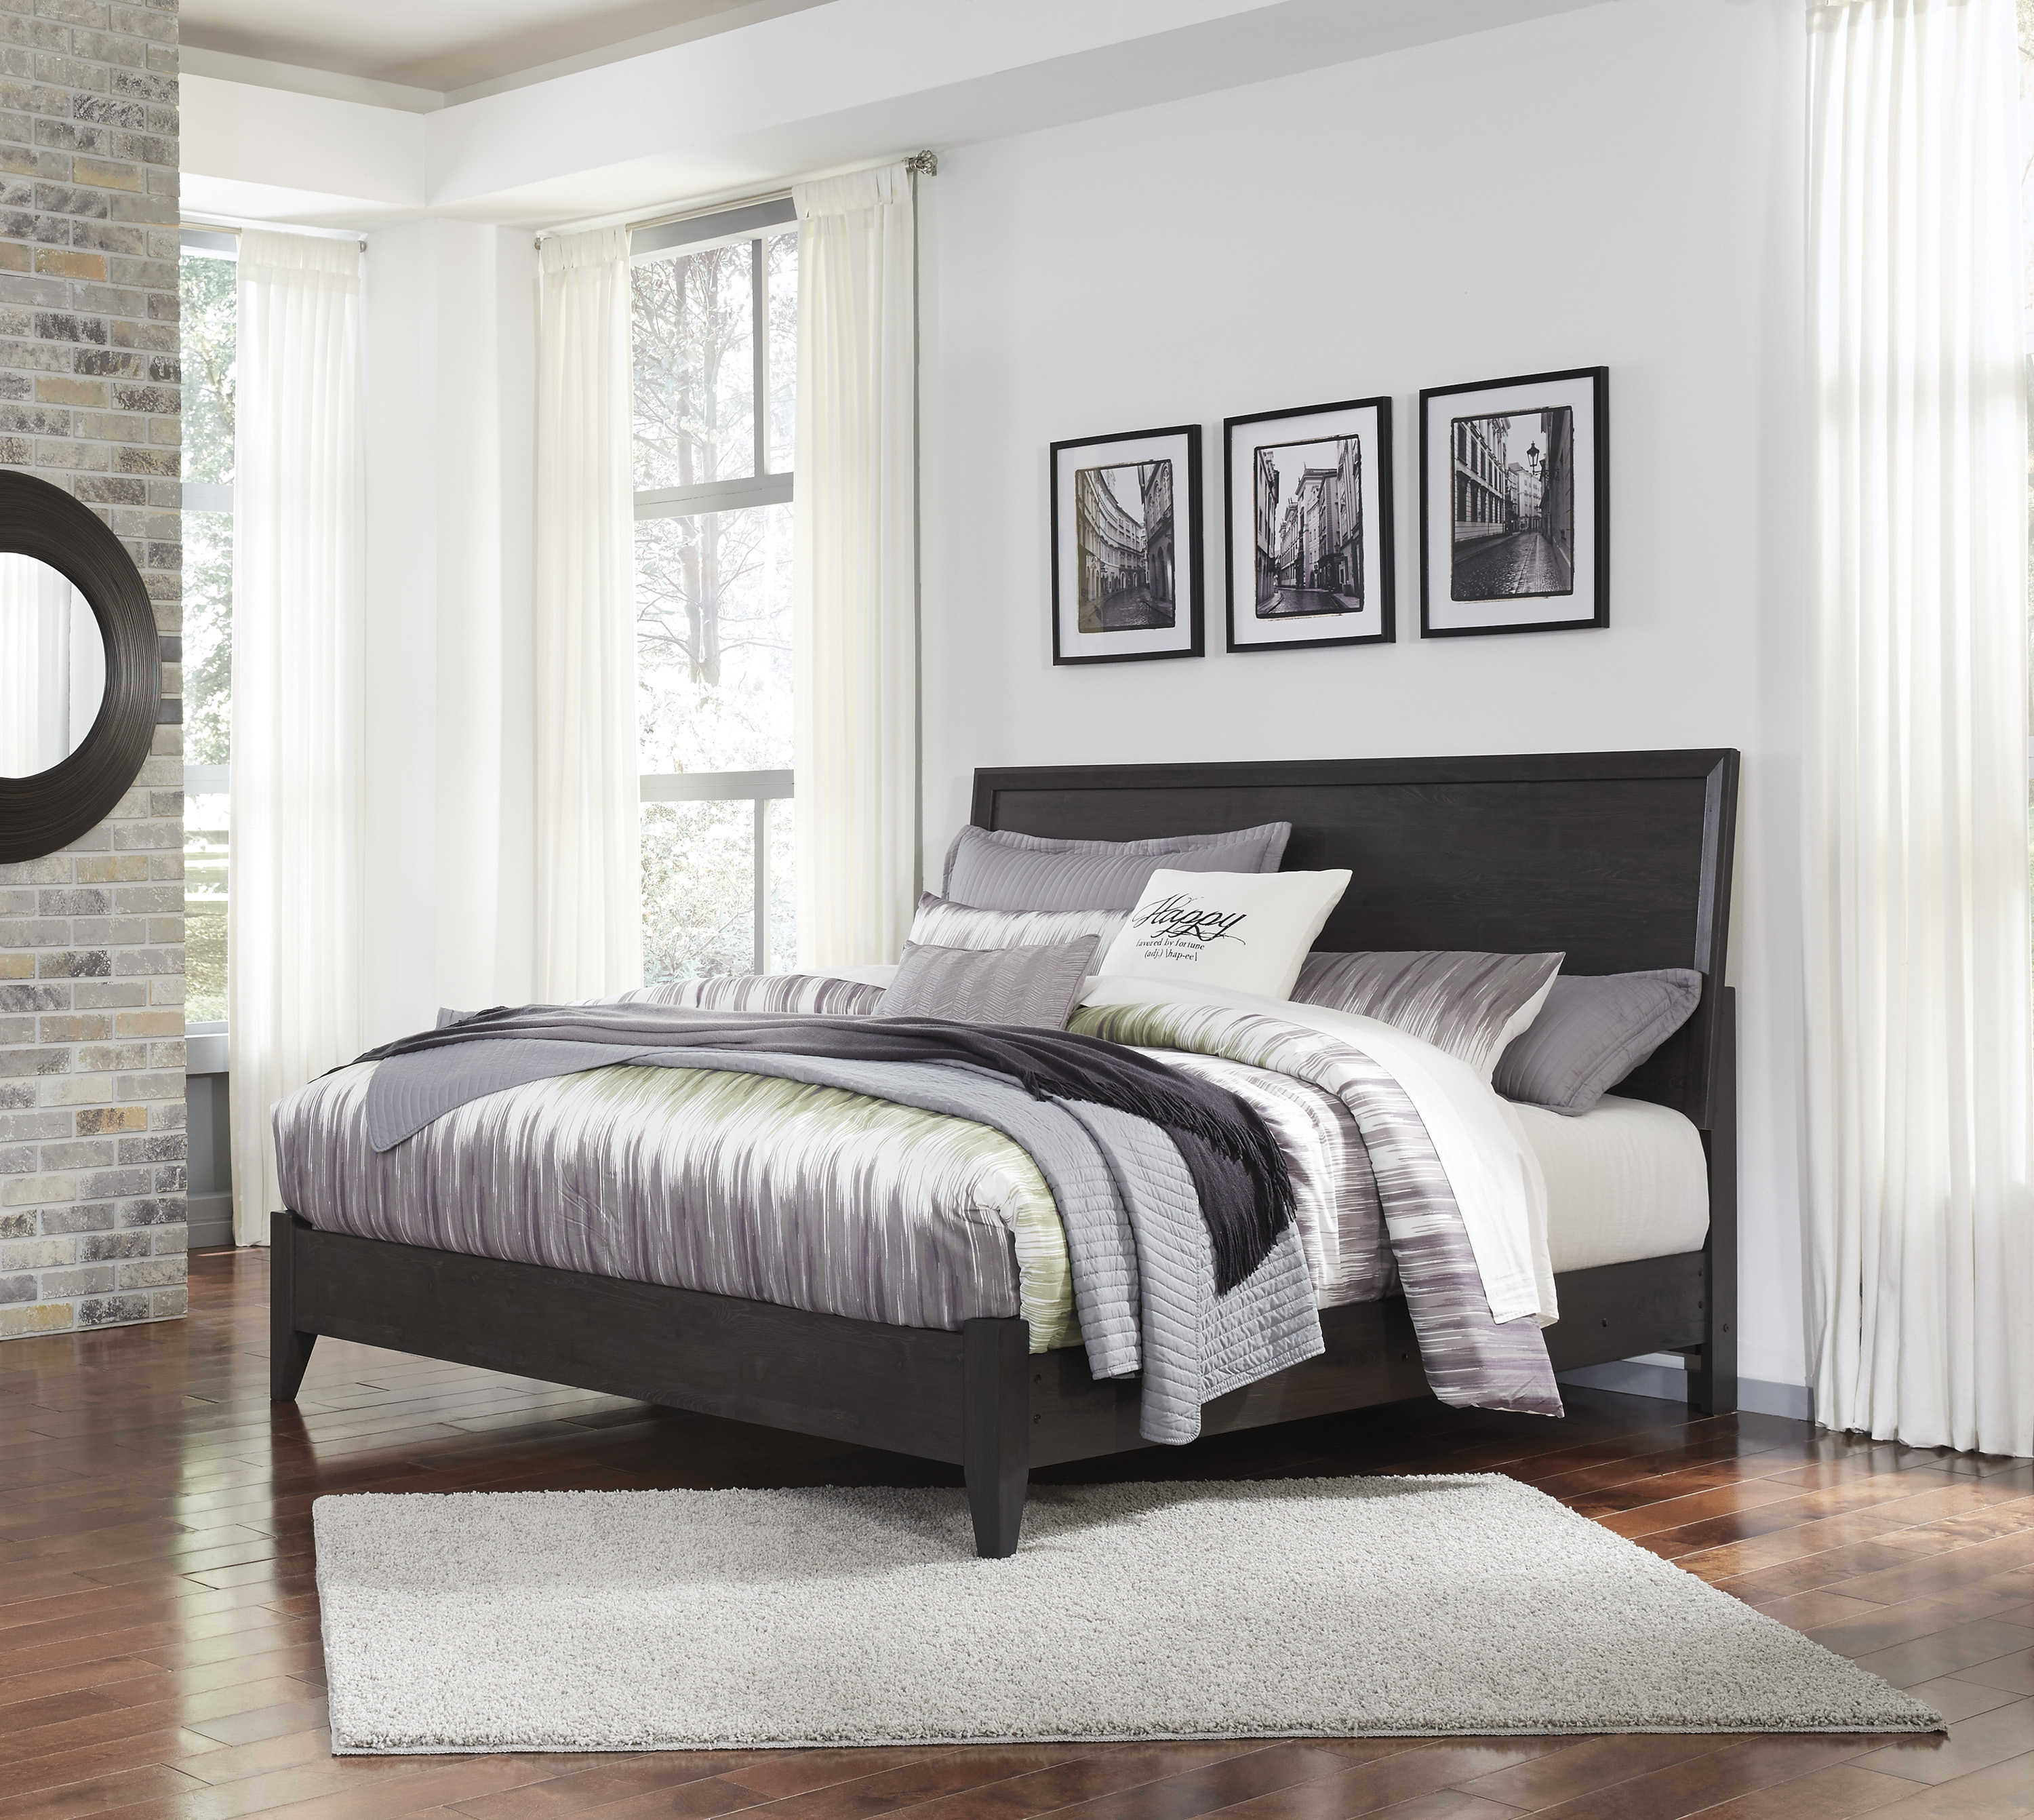 Admirable Ashley Furniture Daltori King Panel Bed The Classy Home Home Interior And Landscaping Palasignezvosmurscom